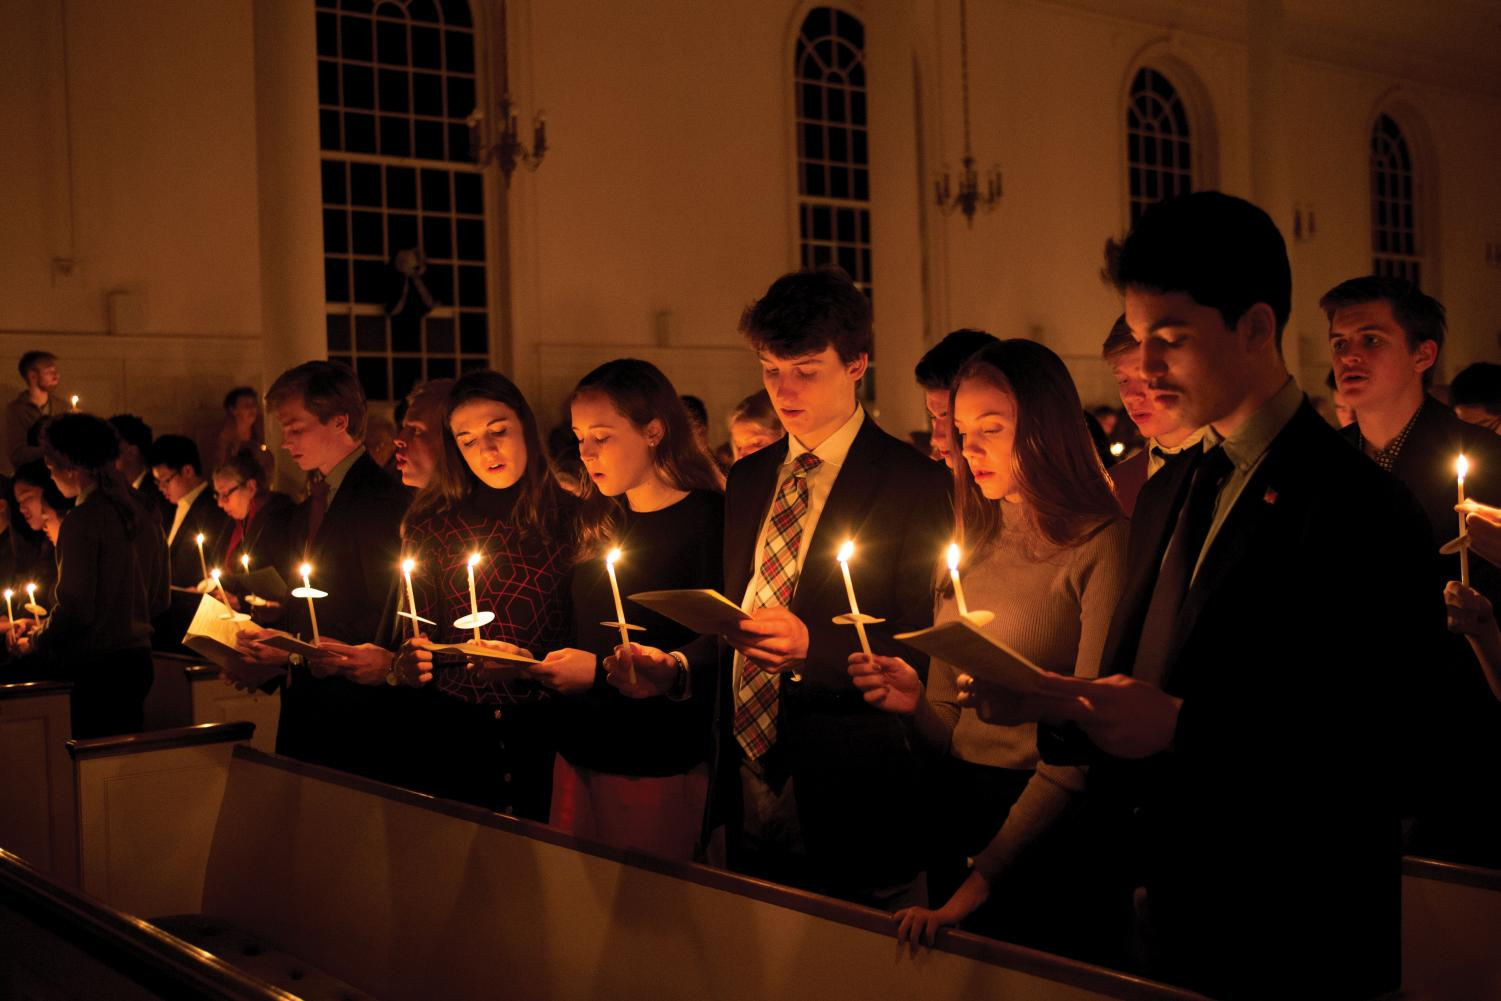 Students hold candles, each lit from a single flame, and sing holiday music at Lessons and Carols last Sunday.